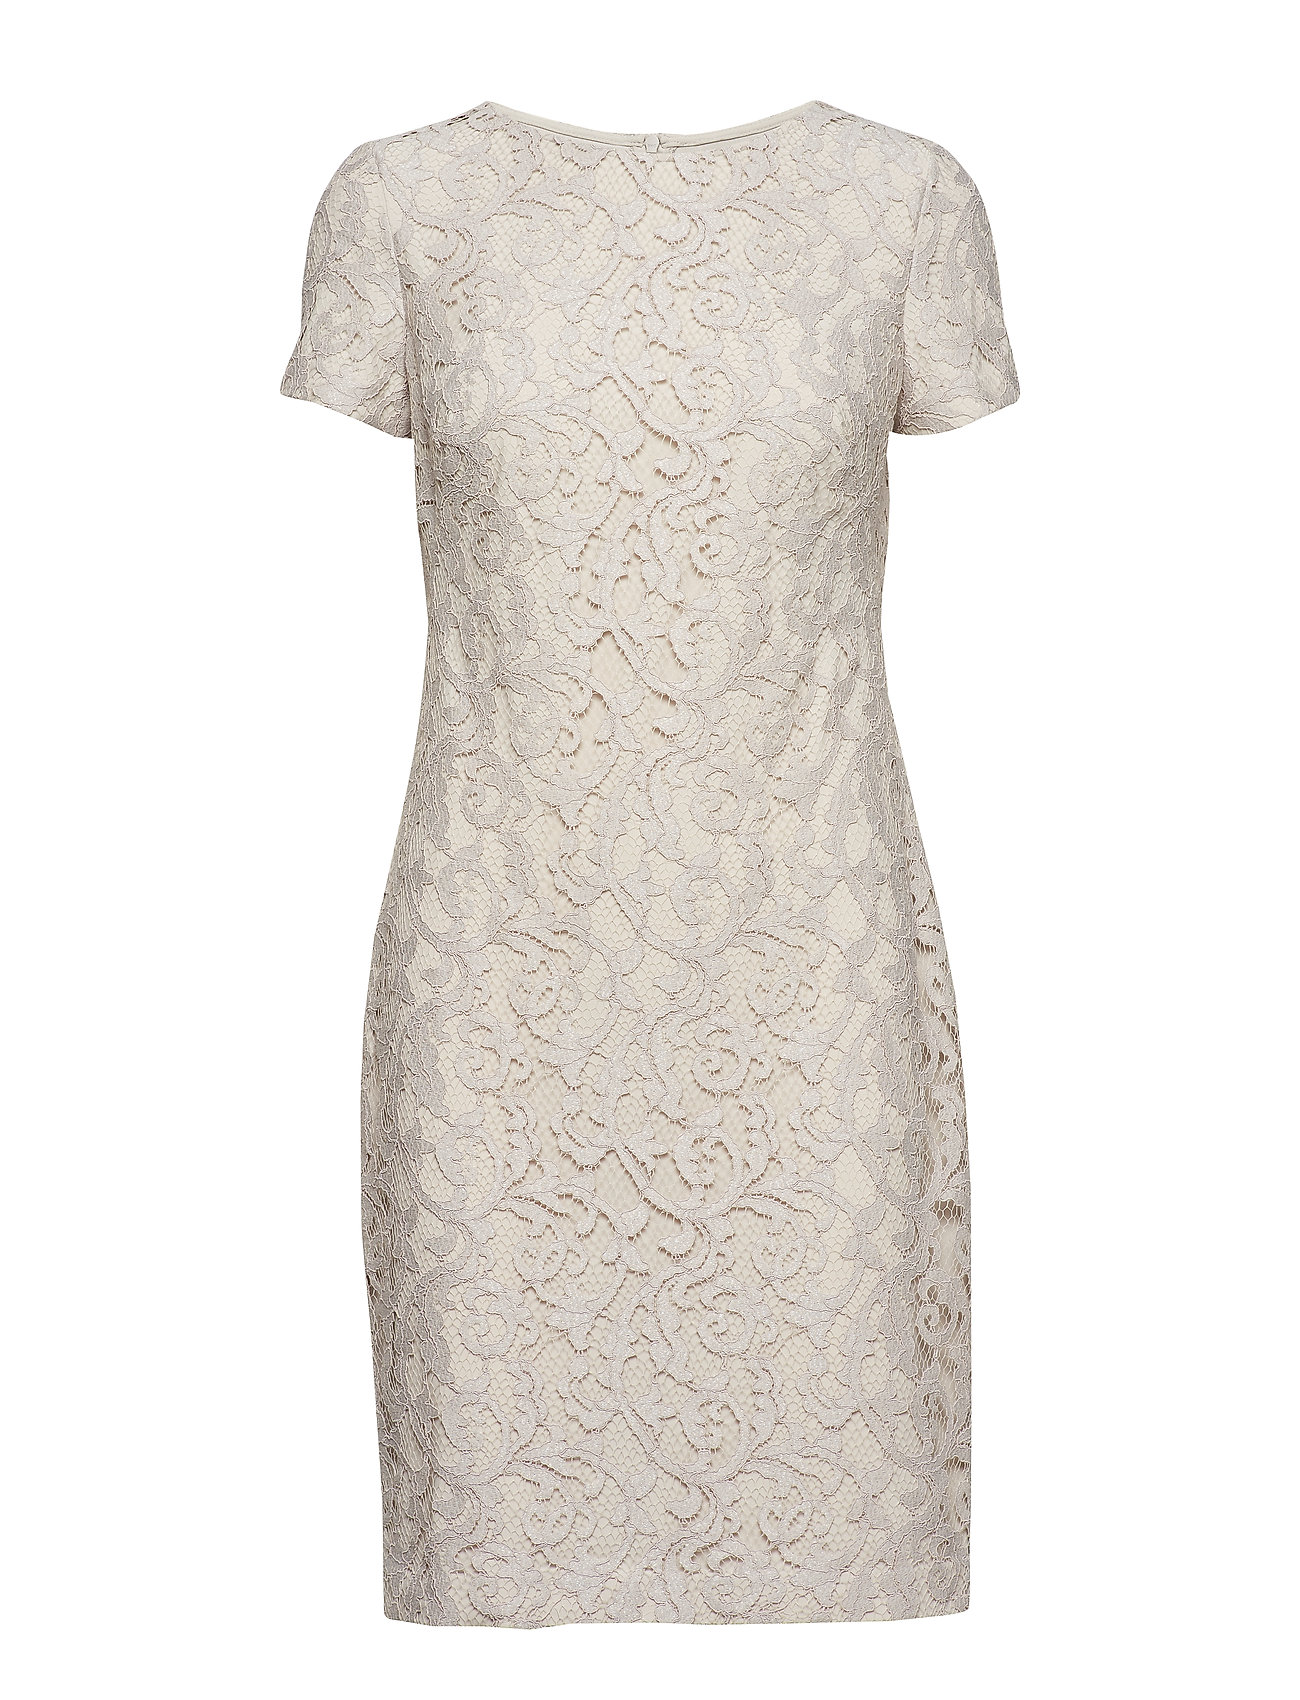 Lauren Ralph Lauren Lace Dress - SANDSTONE/SILVER